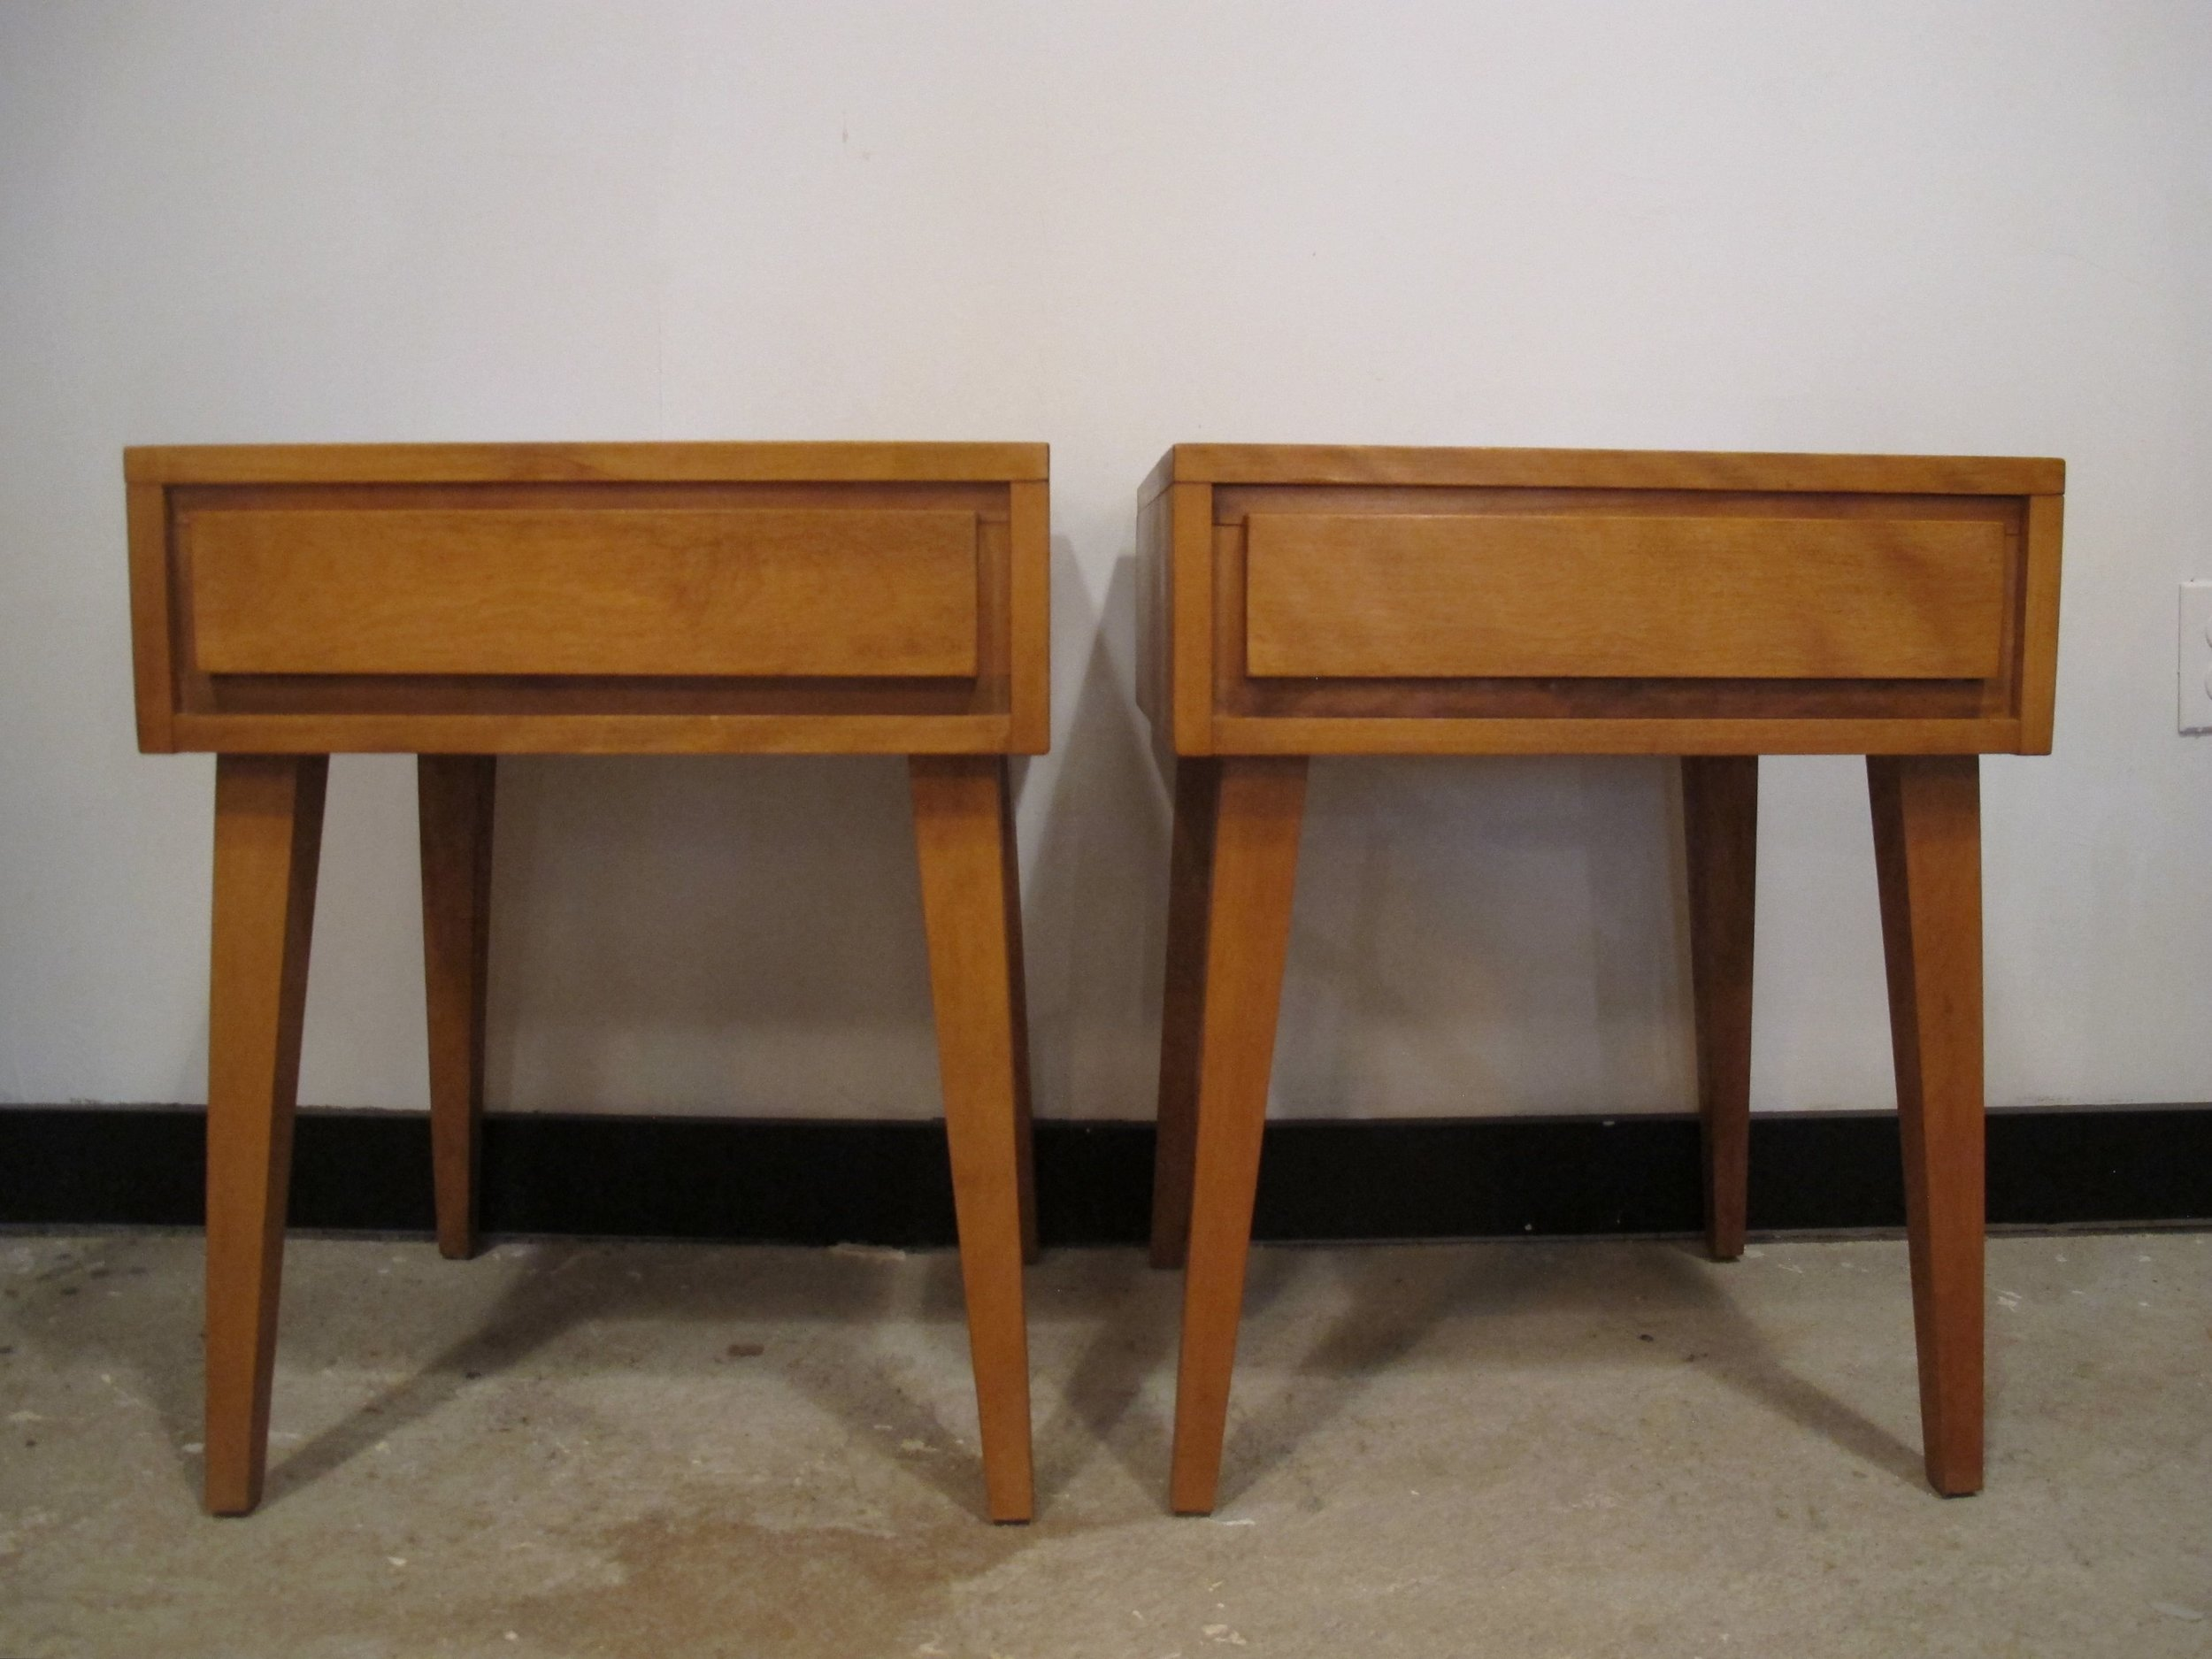 PAIR CONANT BALL MODERNMATES NIGHTSTANDS BY LESLIE DIAMOND